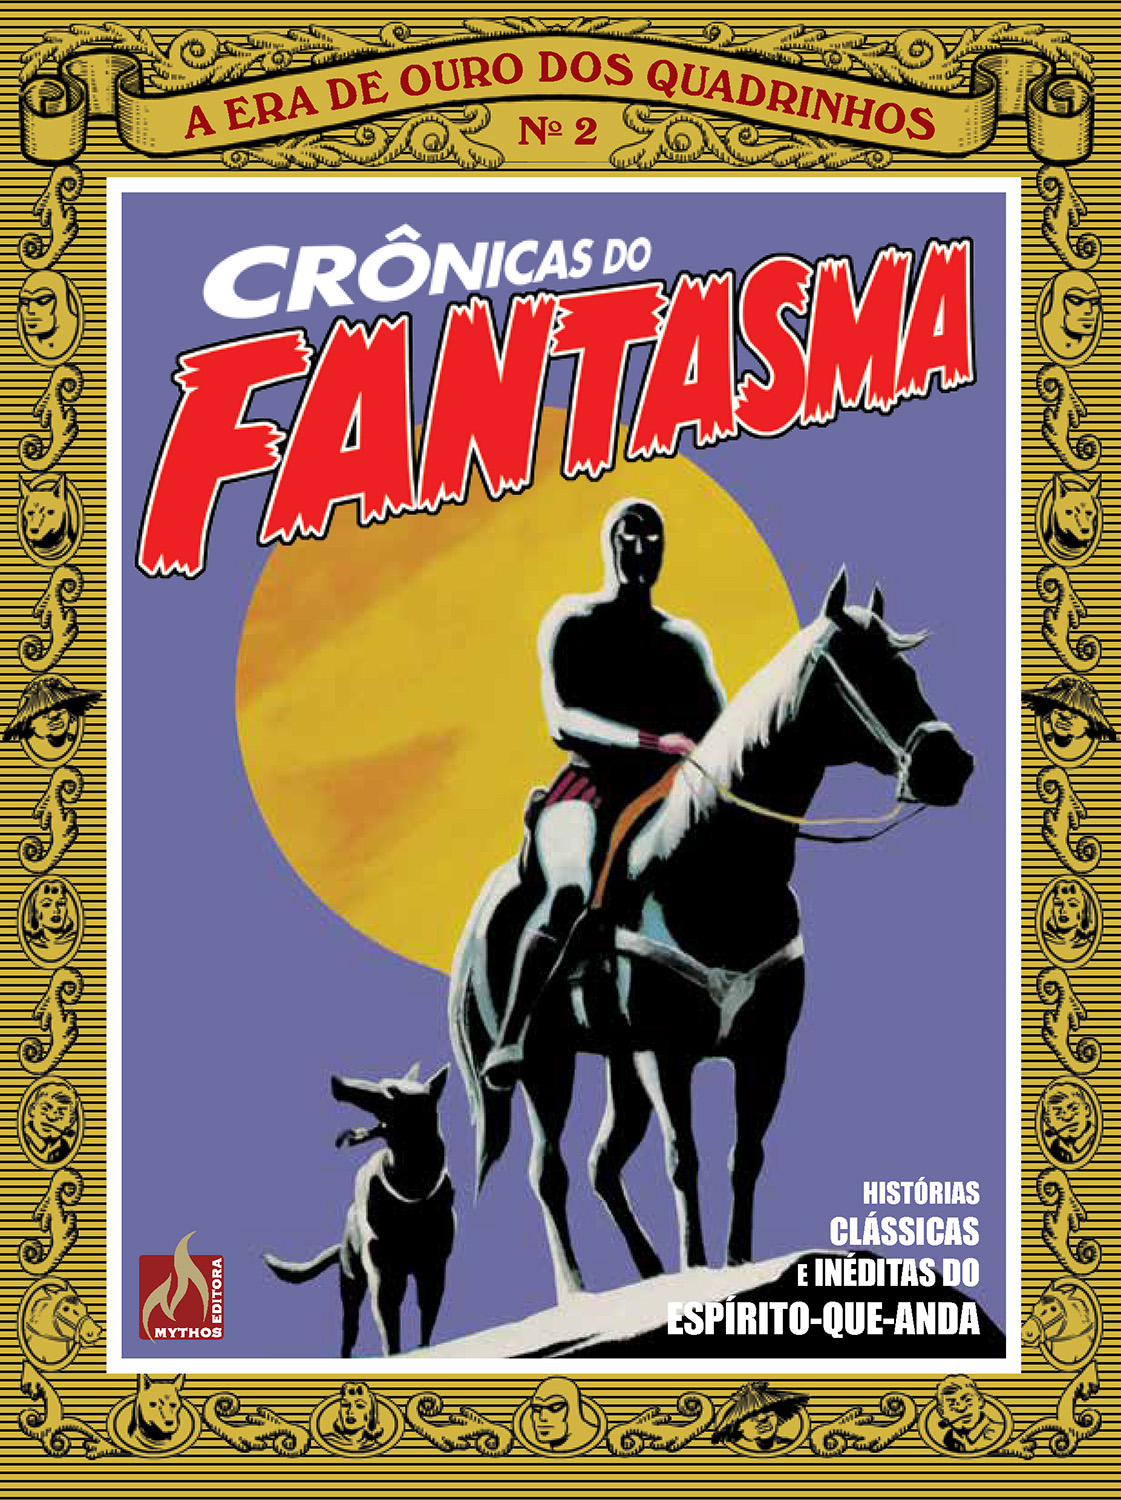 CRÔNICAS DO FANTASMA VOL. 2